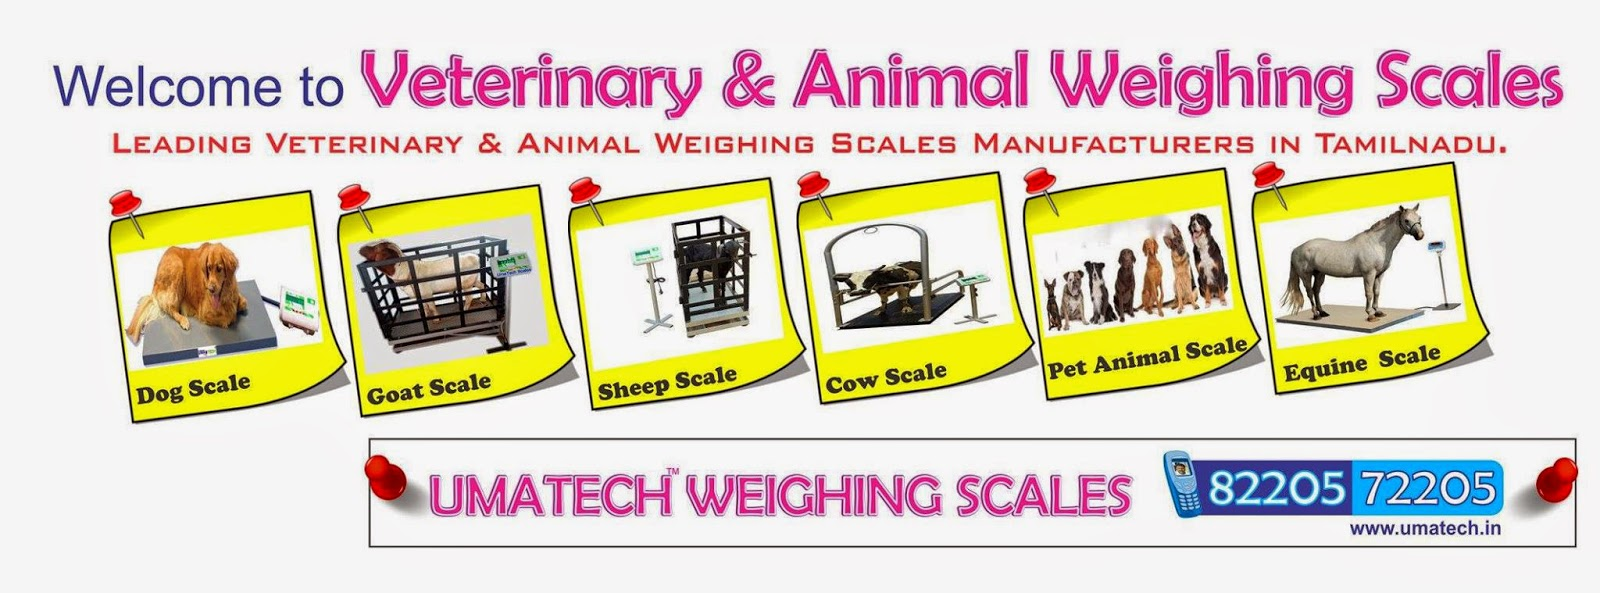 Tamil Nadu Veterinary and Animal Weighing Scales Manufacturers and